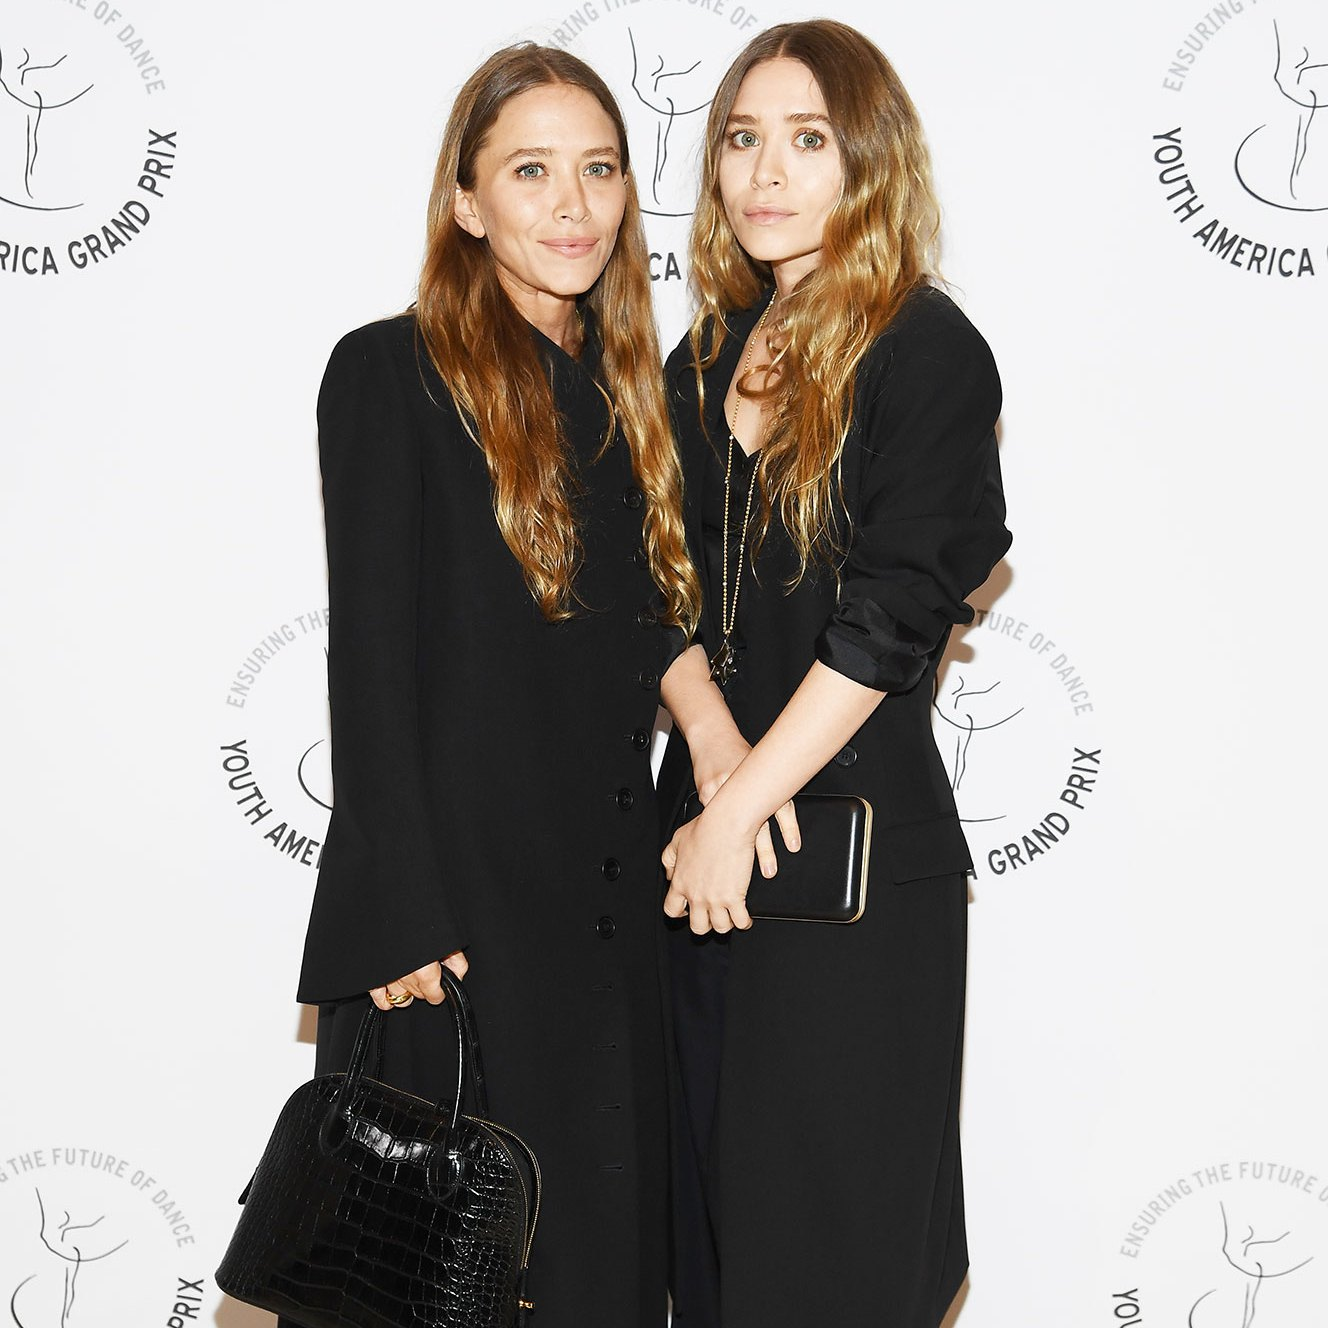 Mary Kate and Ashley Olsen red carpet Youth America Grand Prix's 20th Anniversary Gala